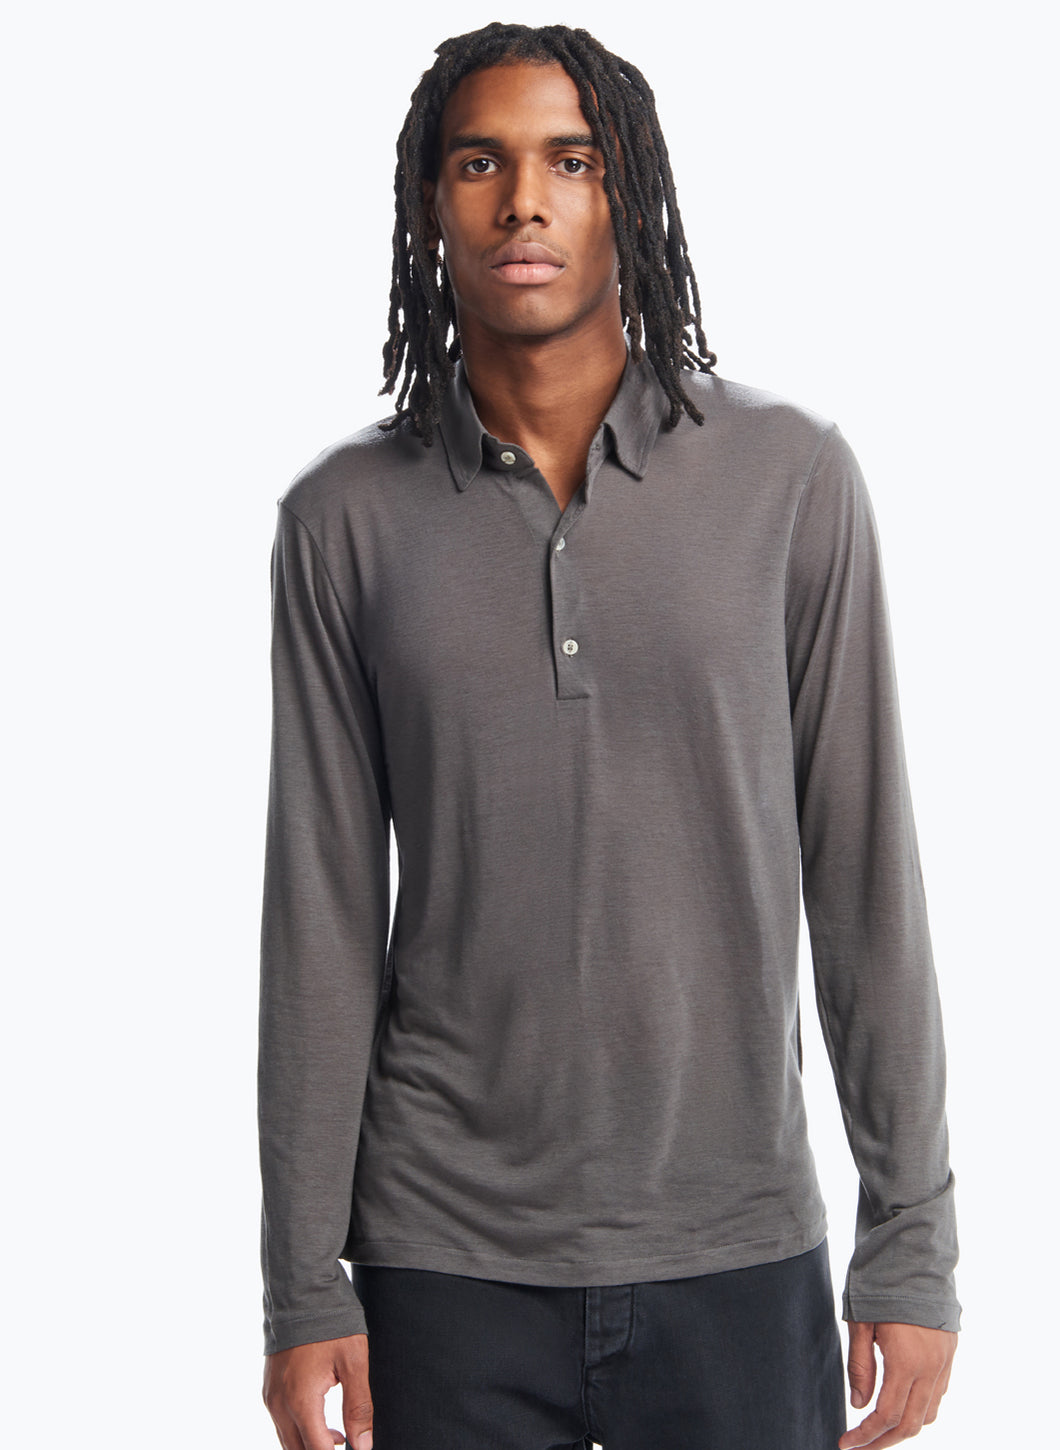 Long Sleeve Poloshirt in Charcoal Grey Tencel